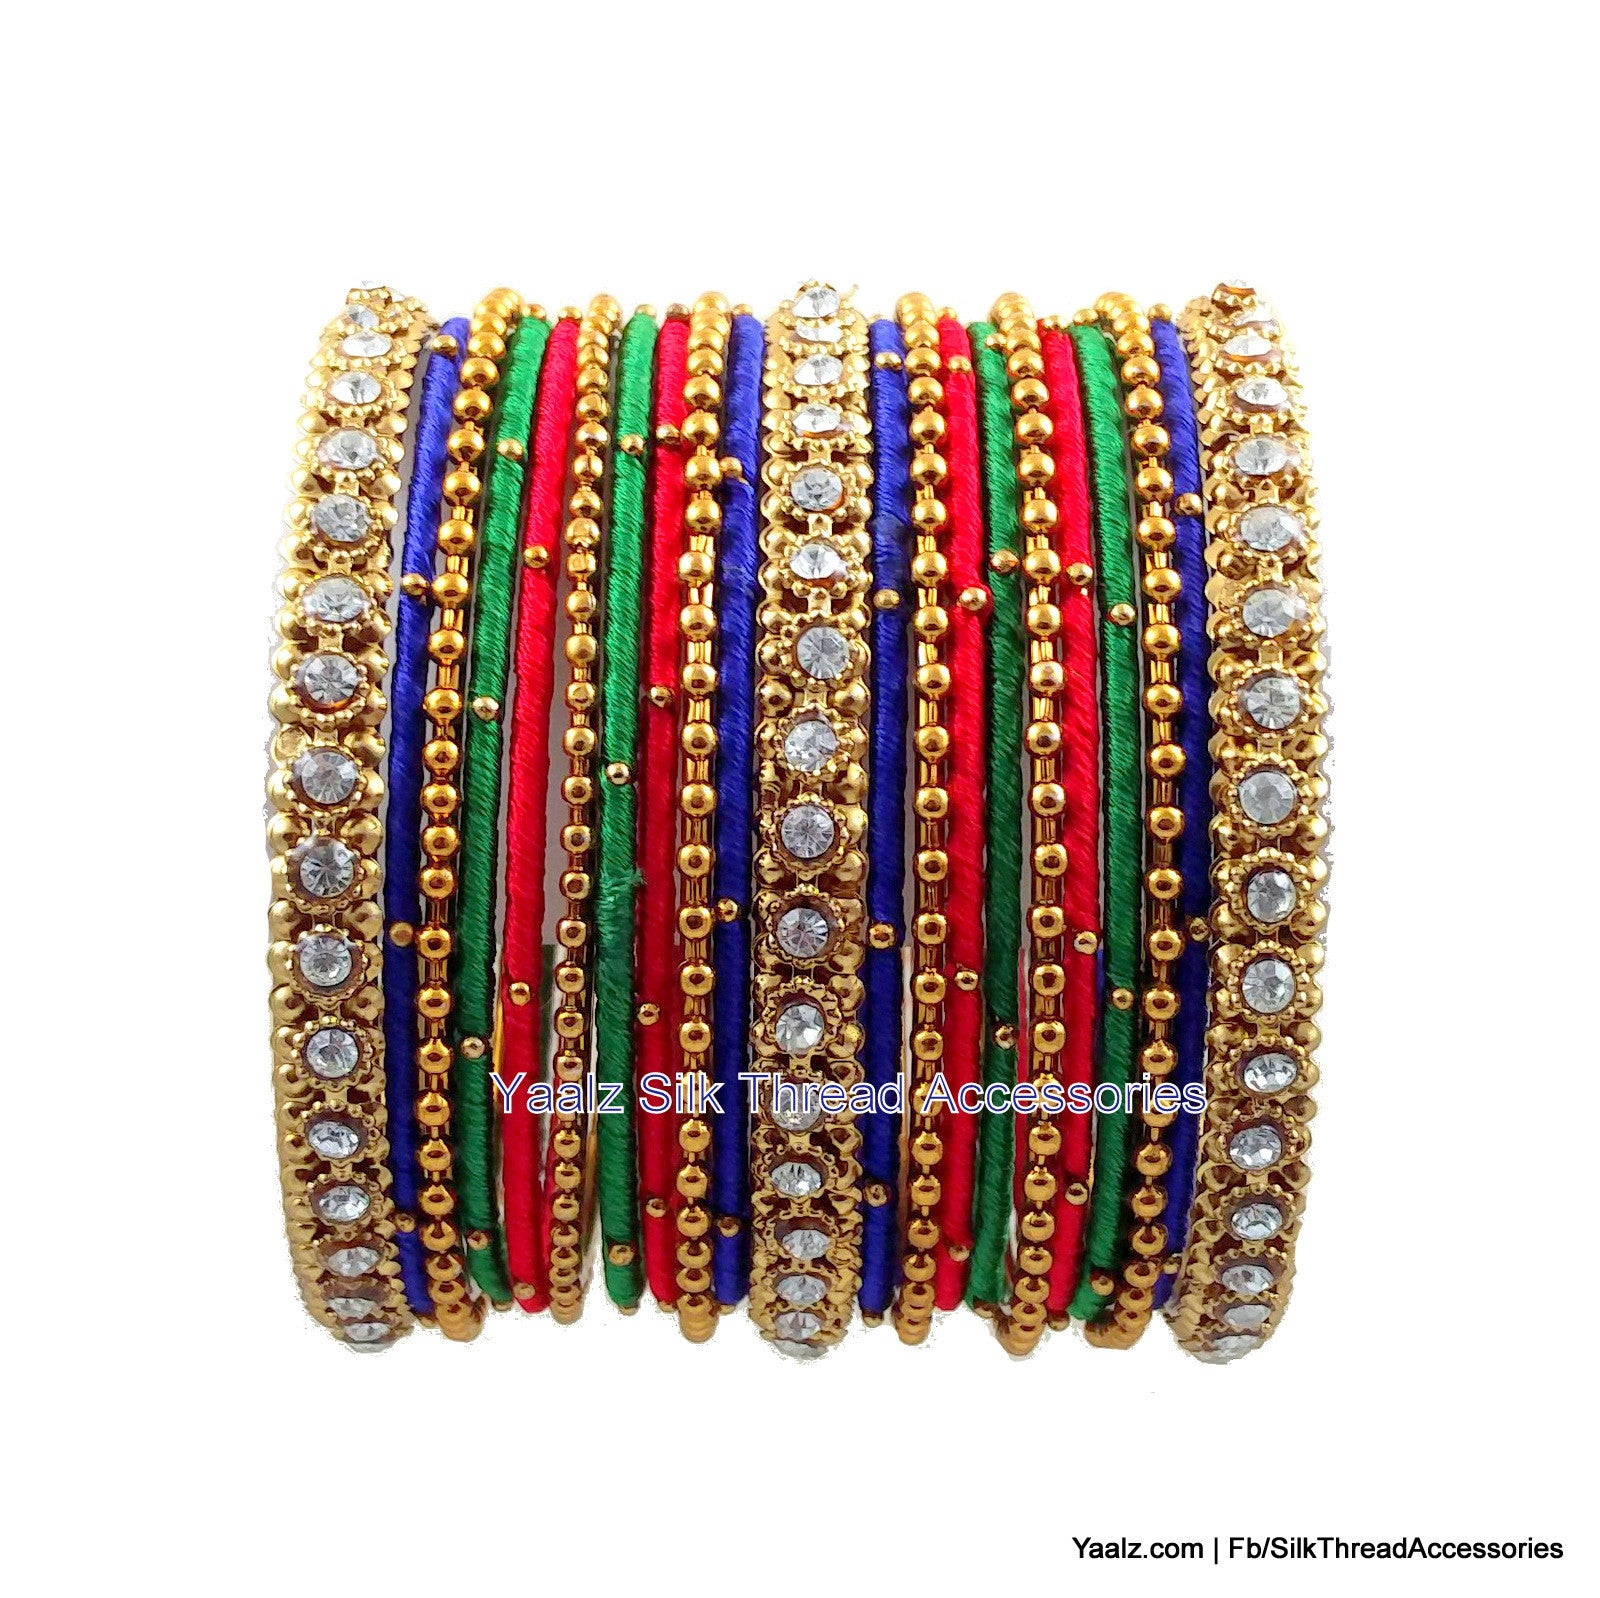 shiny bangles shack jewelberry product images multi metal jewelery color